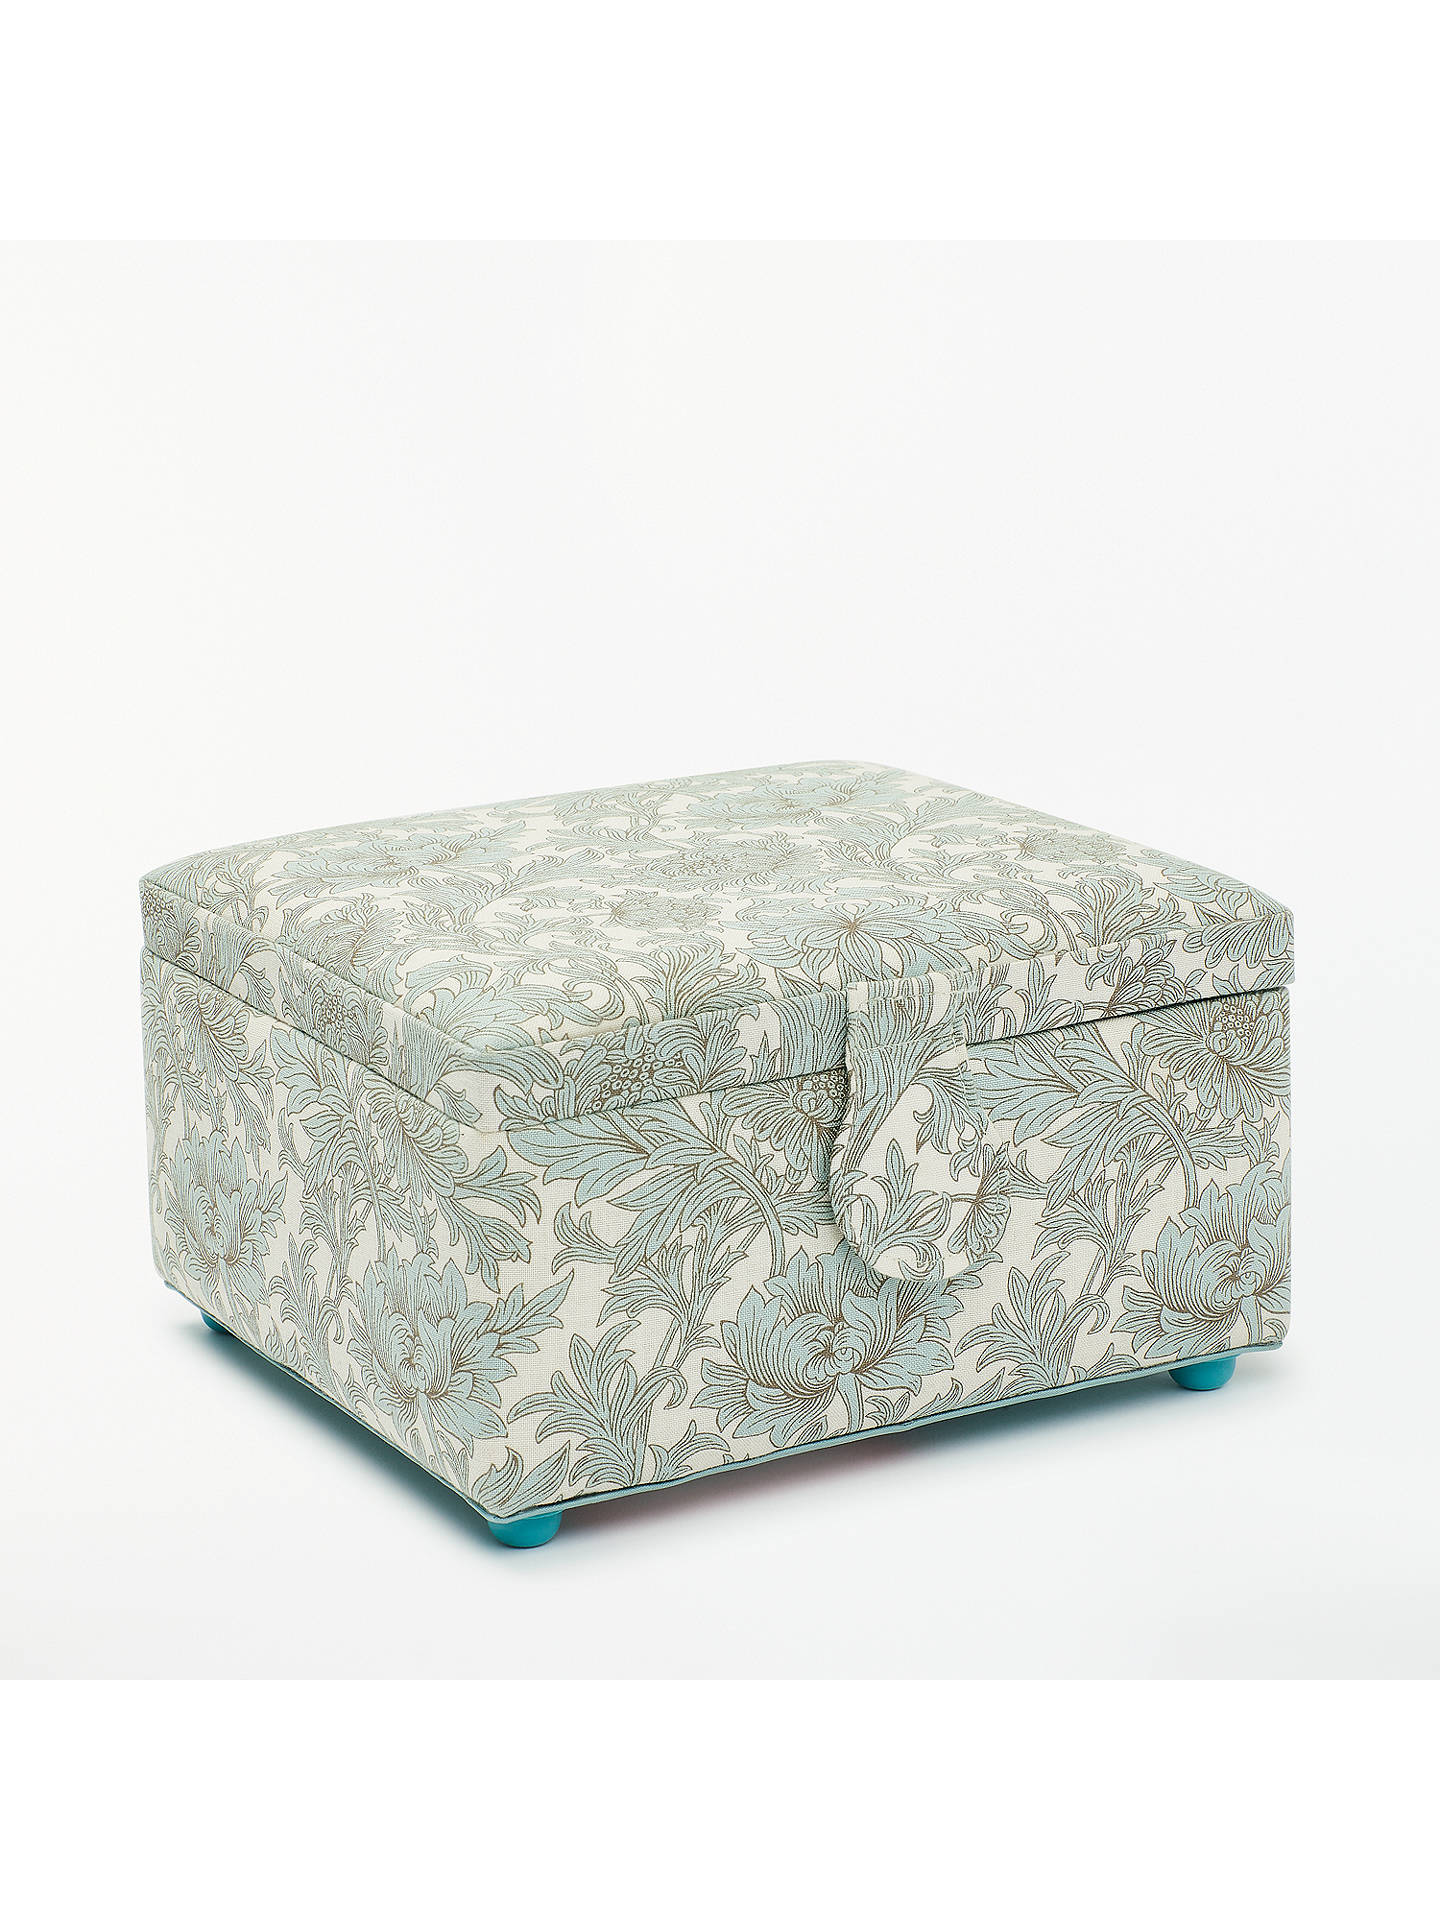 BuyJohn Lewis & Partners Chrysanthemum Print Small Square Sewing Basket, Green Online at johnlewis.com